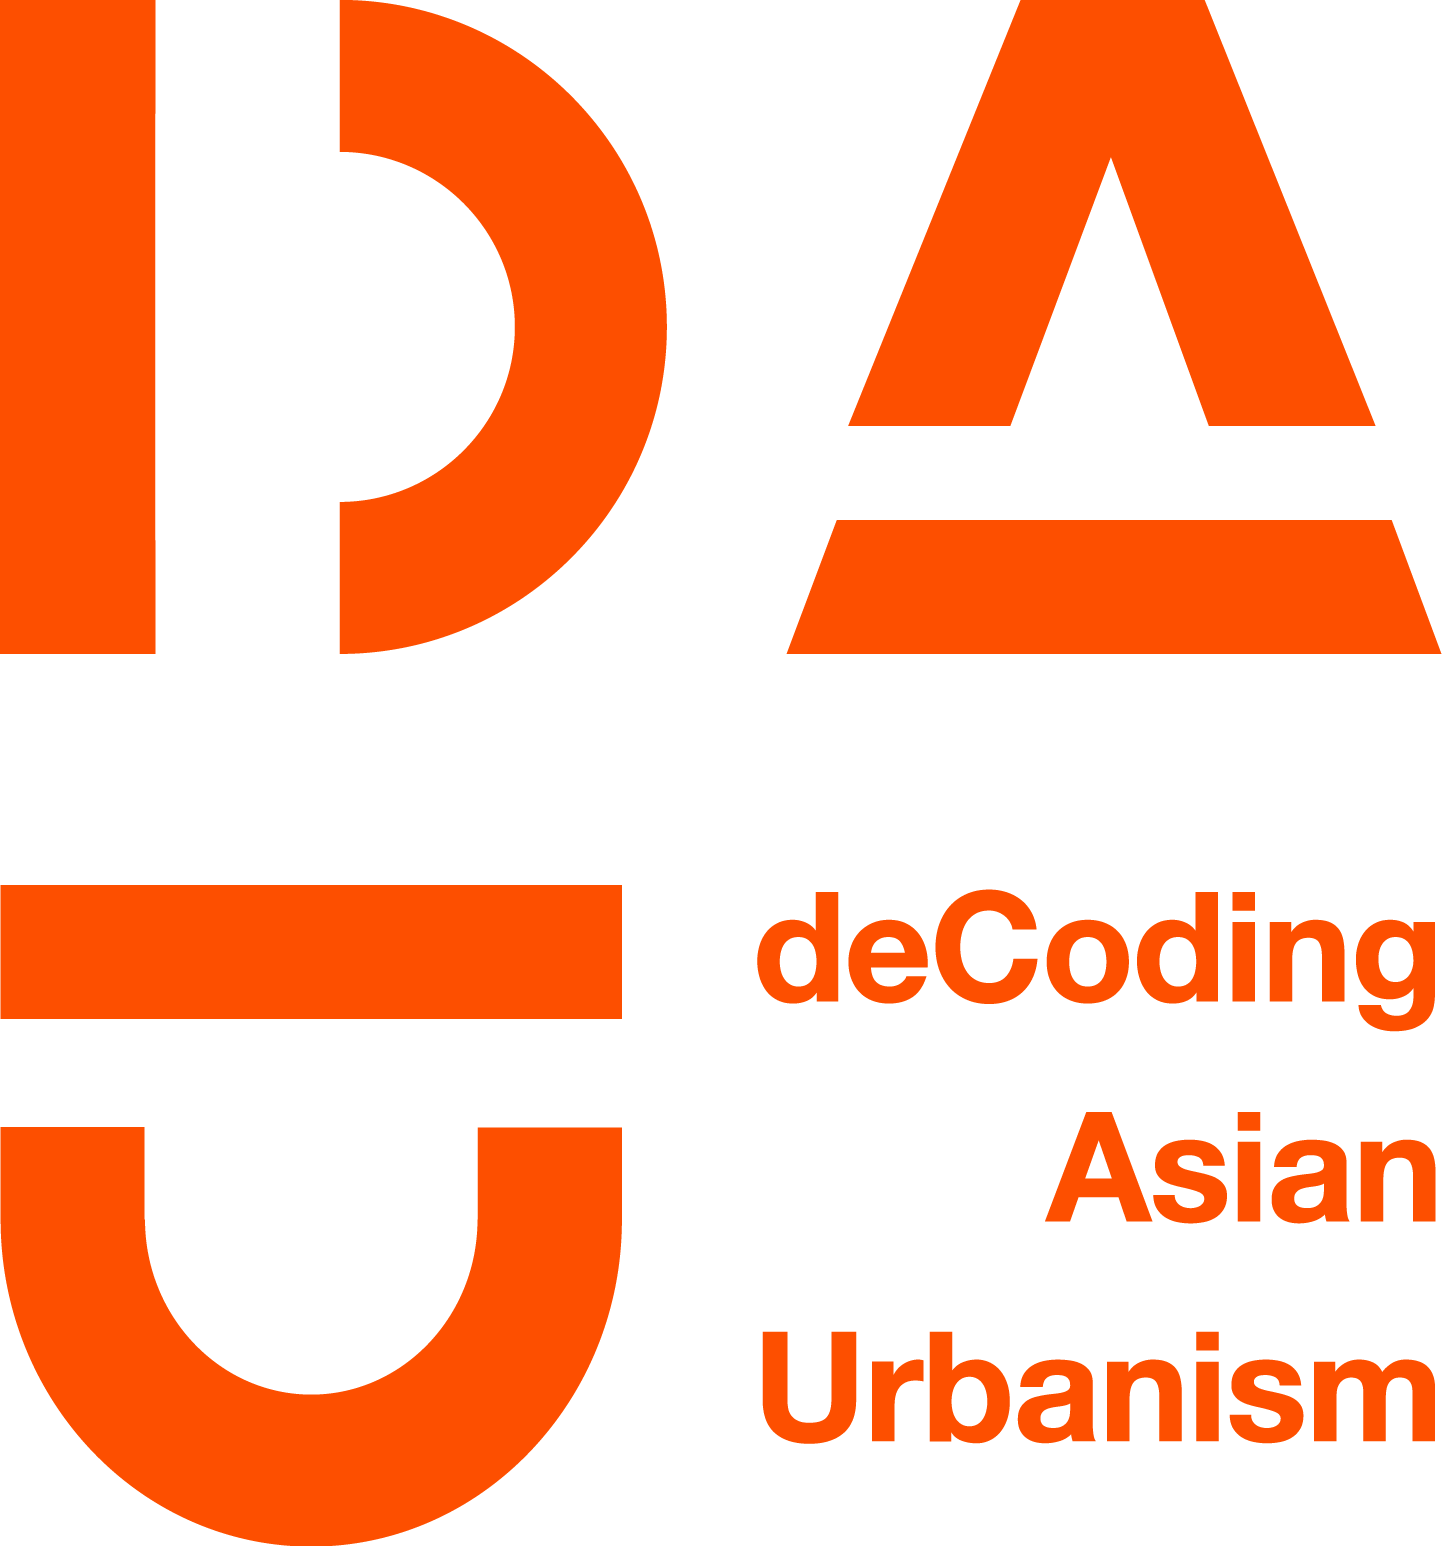 Decoding Asian Urbanism